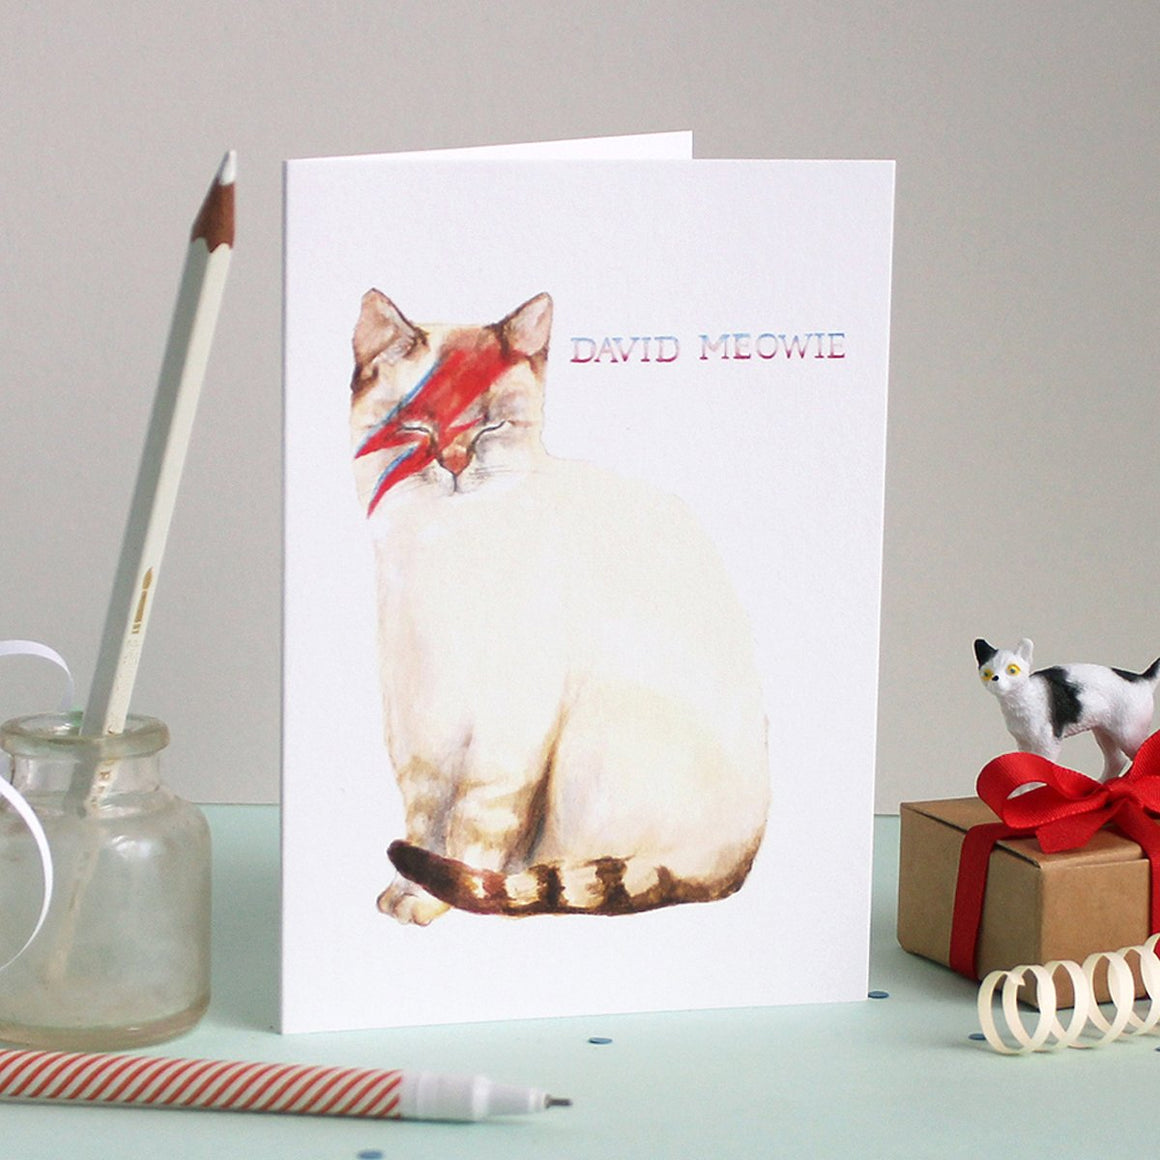 Mister Peebles Greeting Card 'David Meowie'